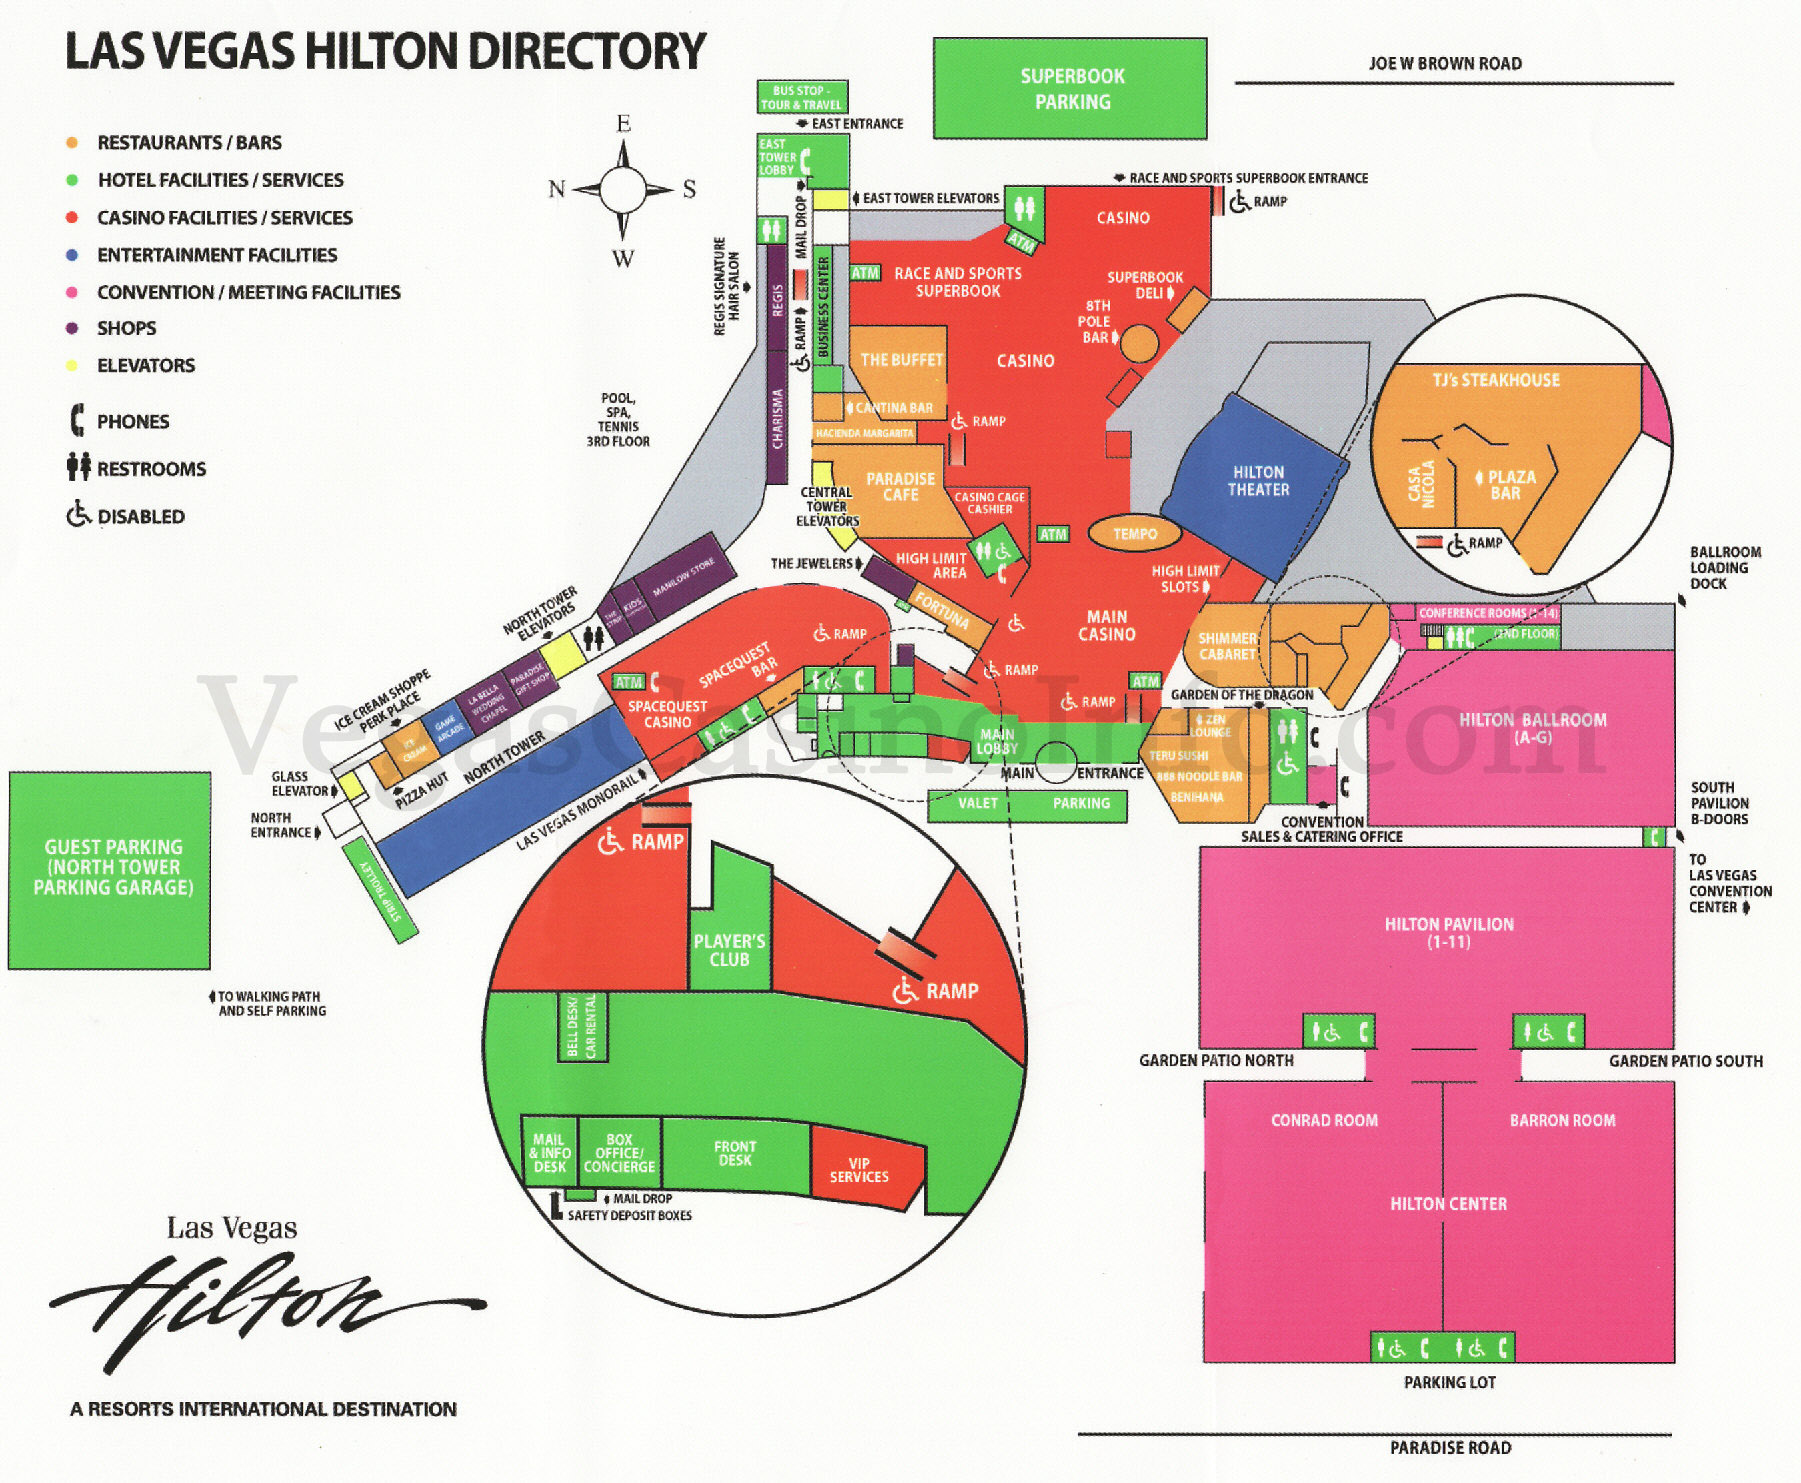 Las Vegas Casino Property Maps And Floor Plans VegasCasinoInfocom - Las vegas floor plans